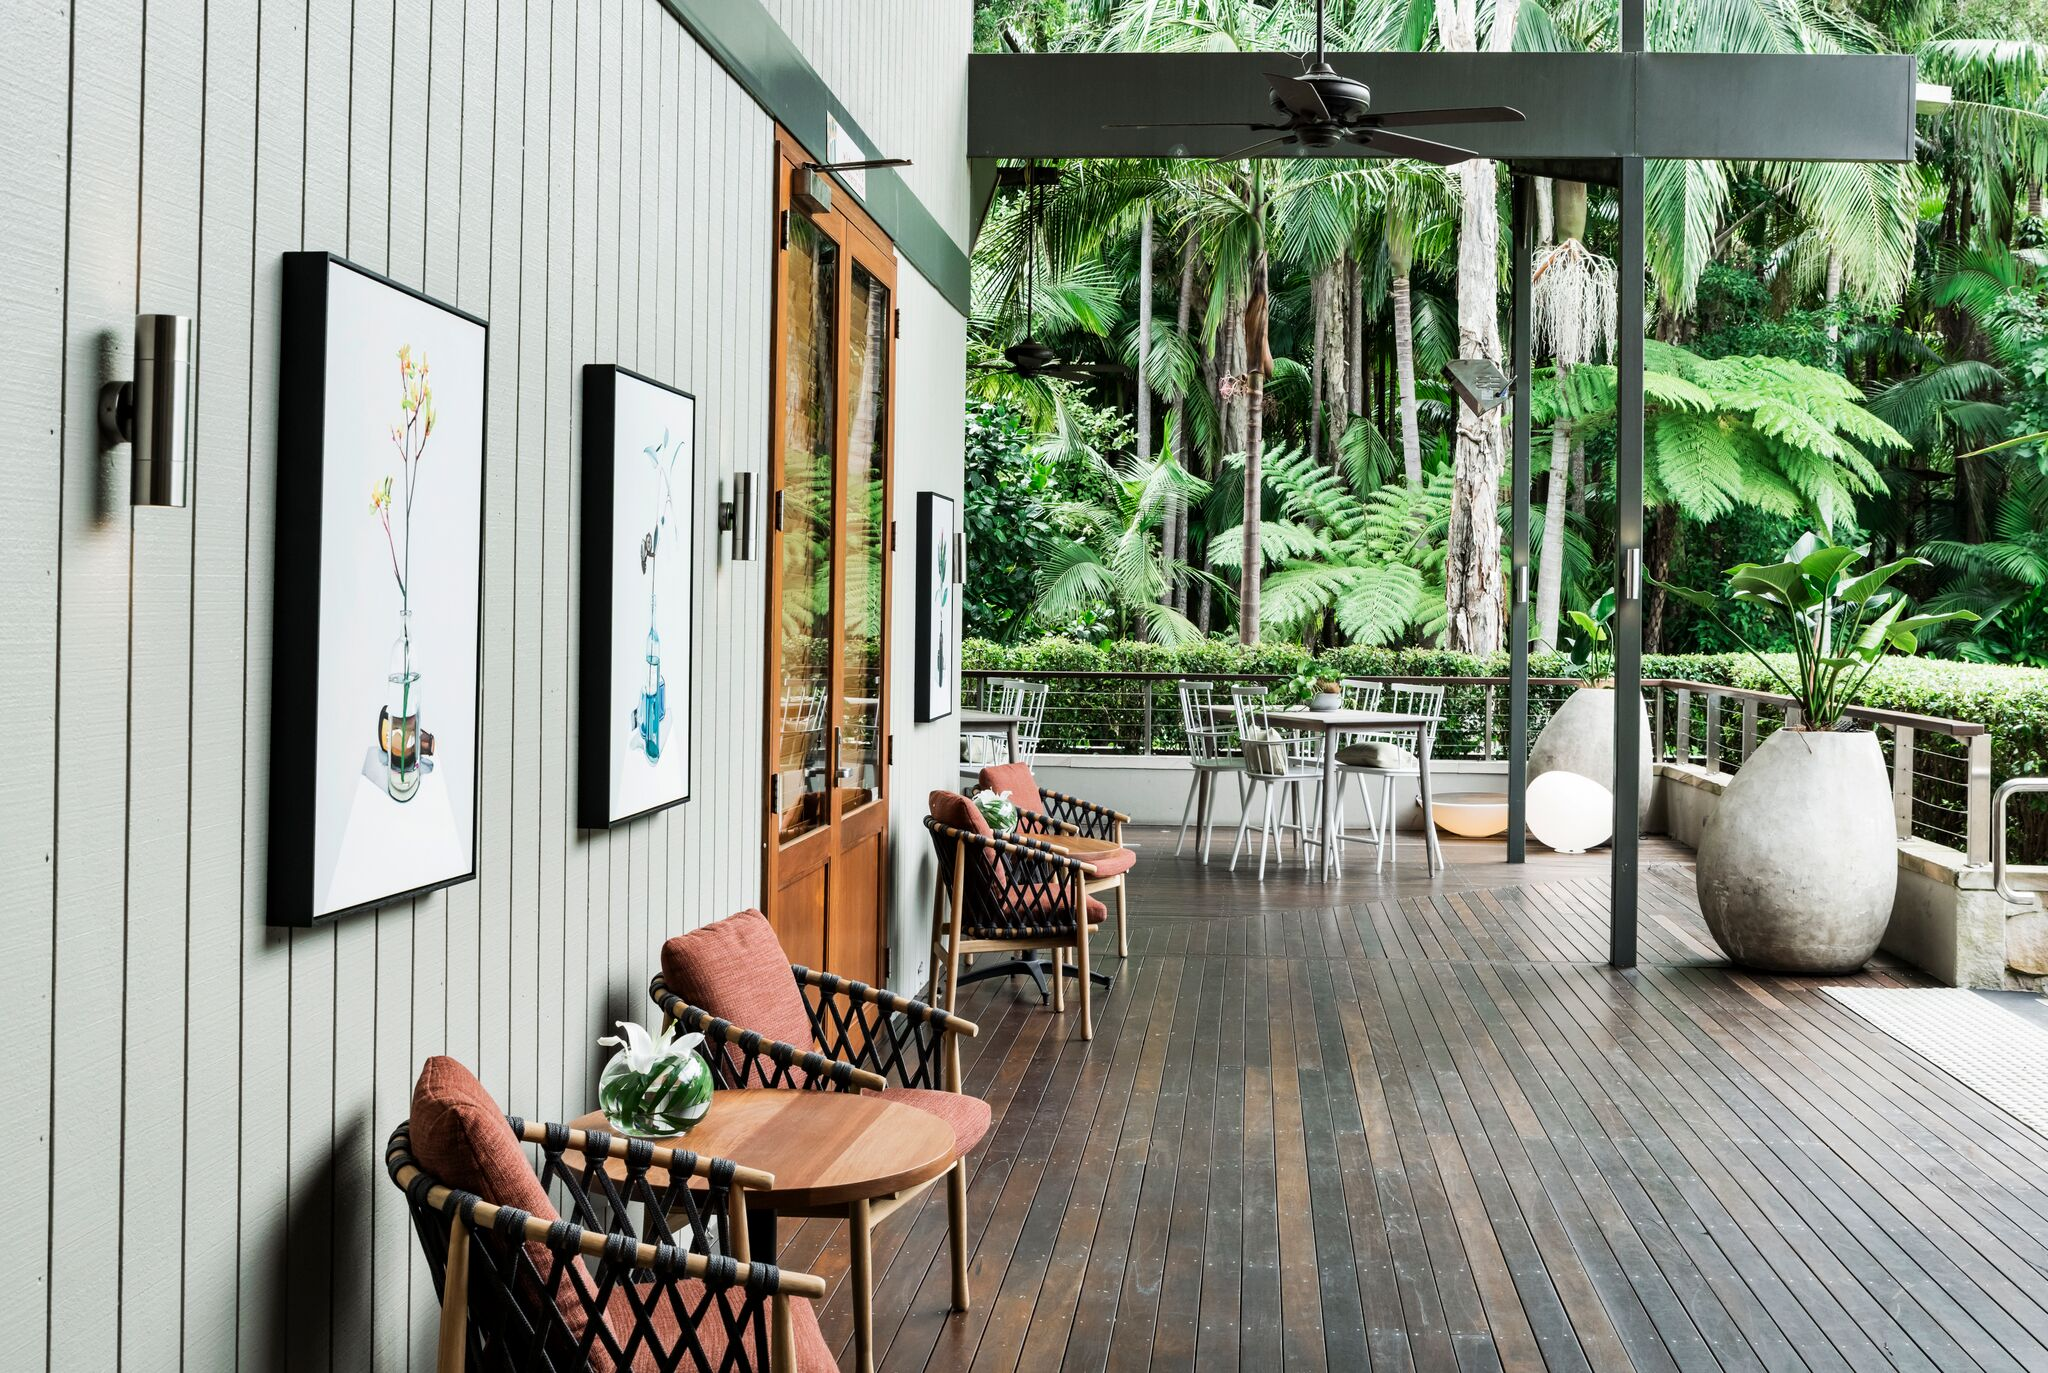 The verandah extends the indoors out and offers casual places to sit and relax. Photo by Michael Wee.